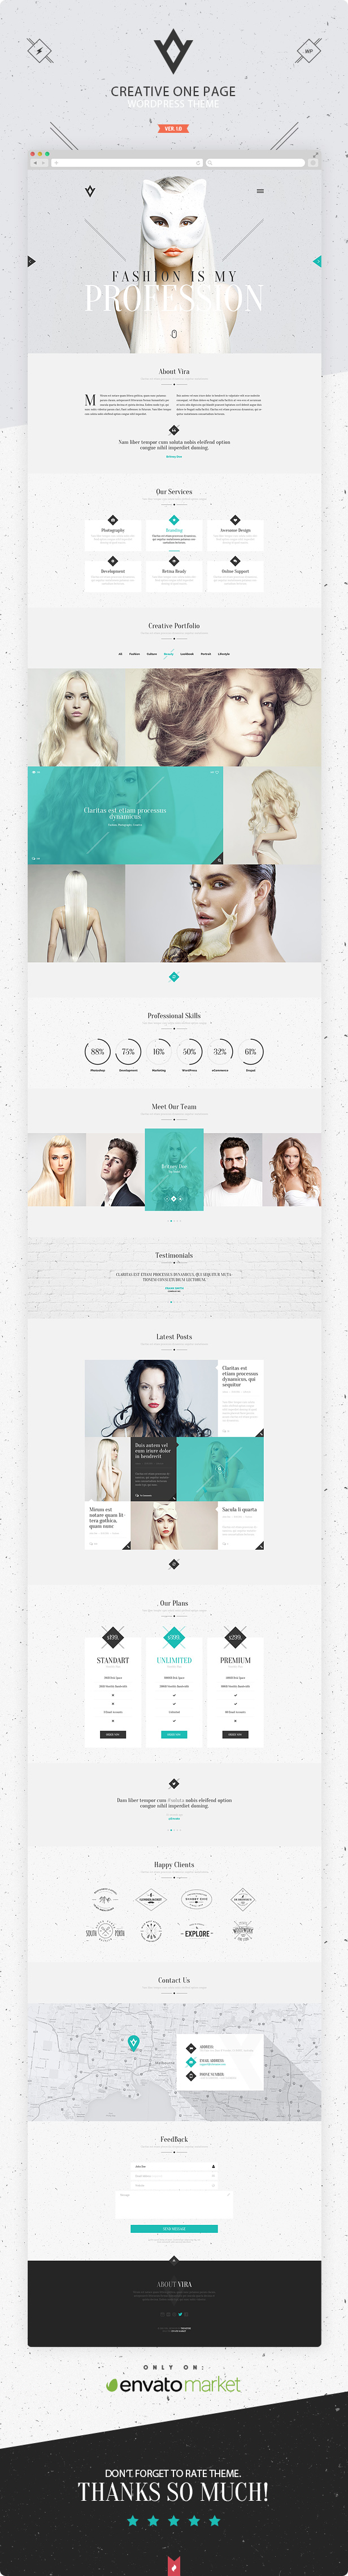 VIRA - Creative One Page WordPress Theme